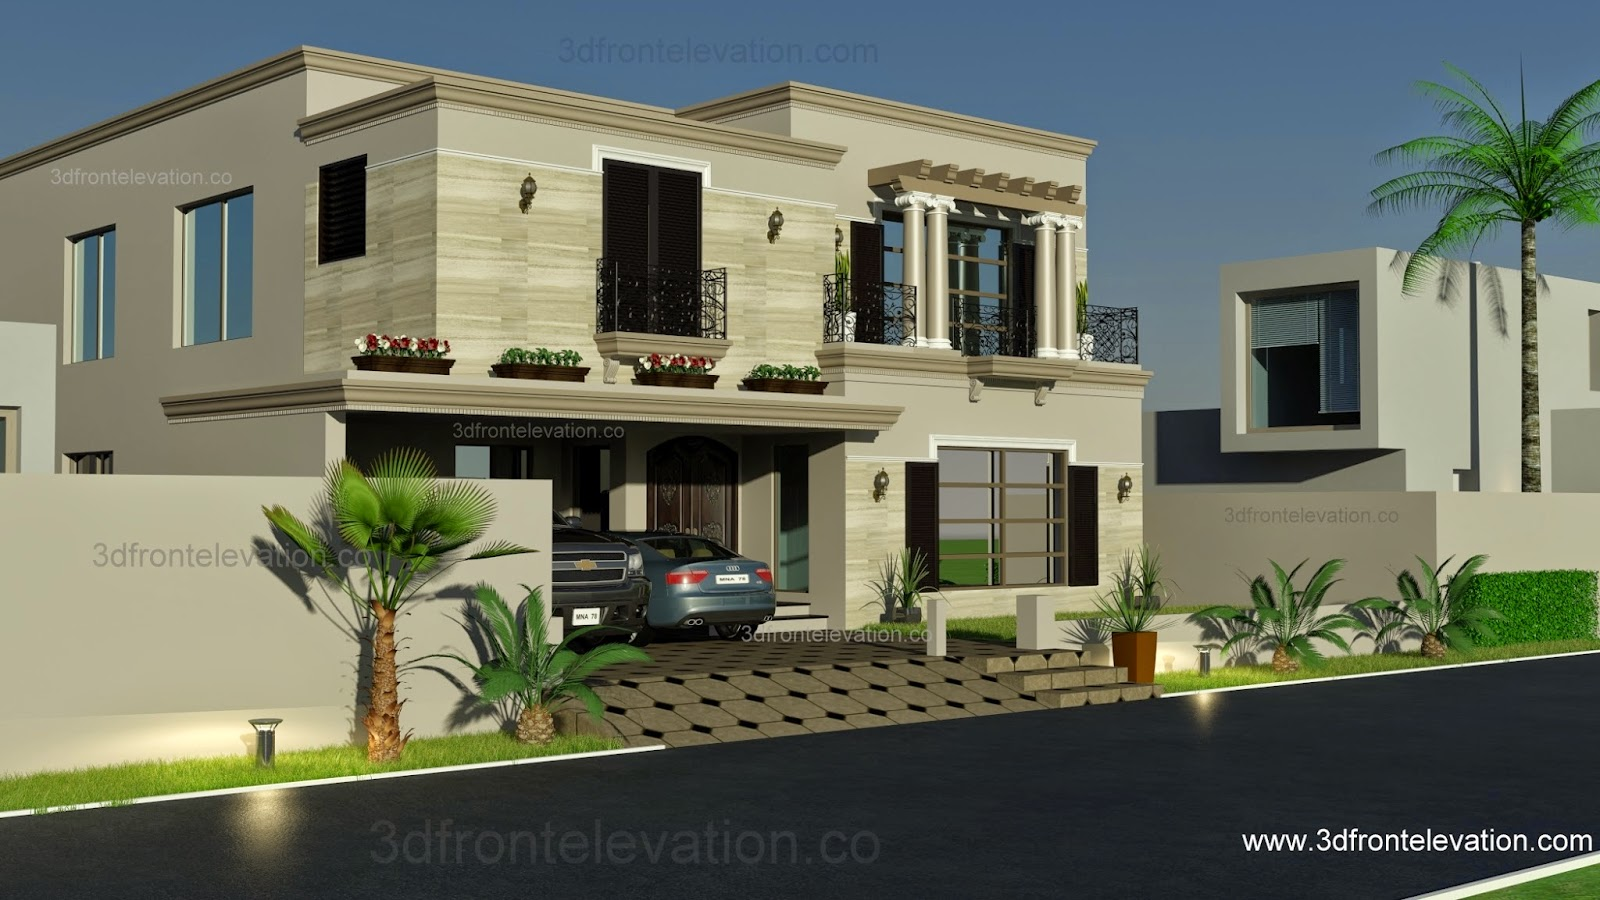 Mercial building front elevation together with 10 marla house design